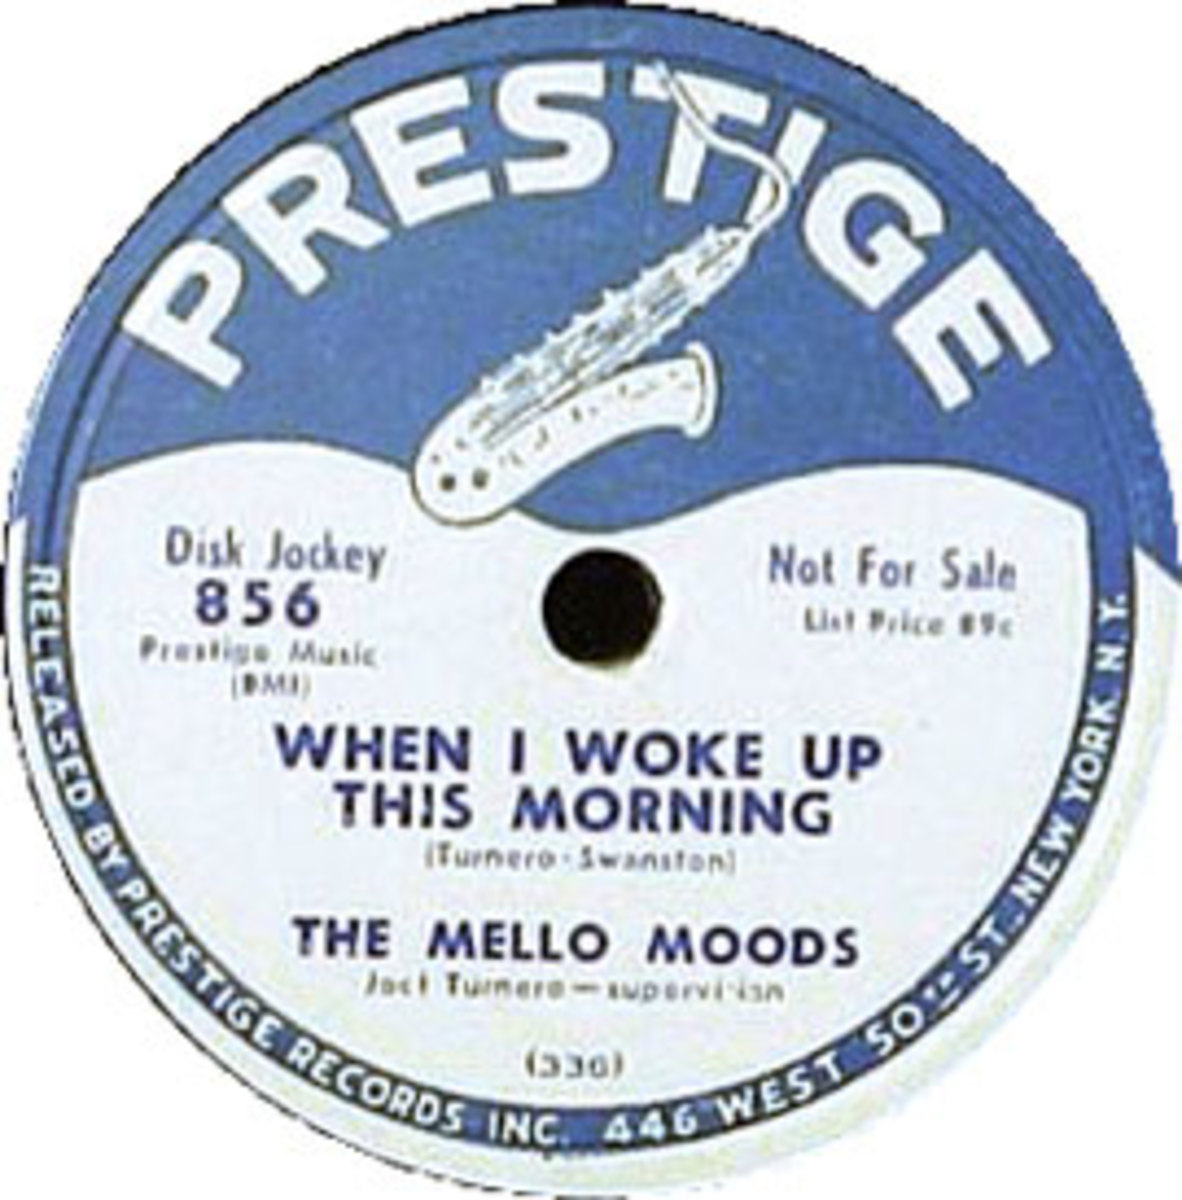 The Mello-Moods When I Woke Up This Morning